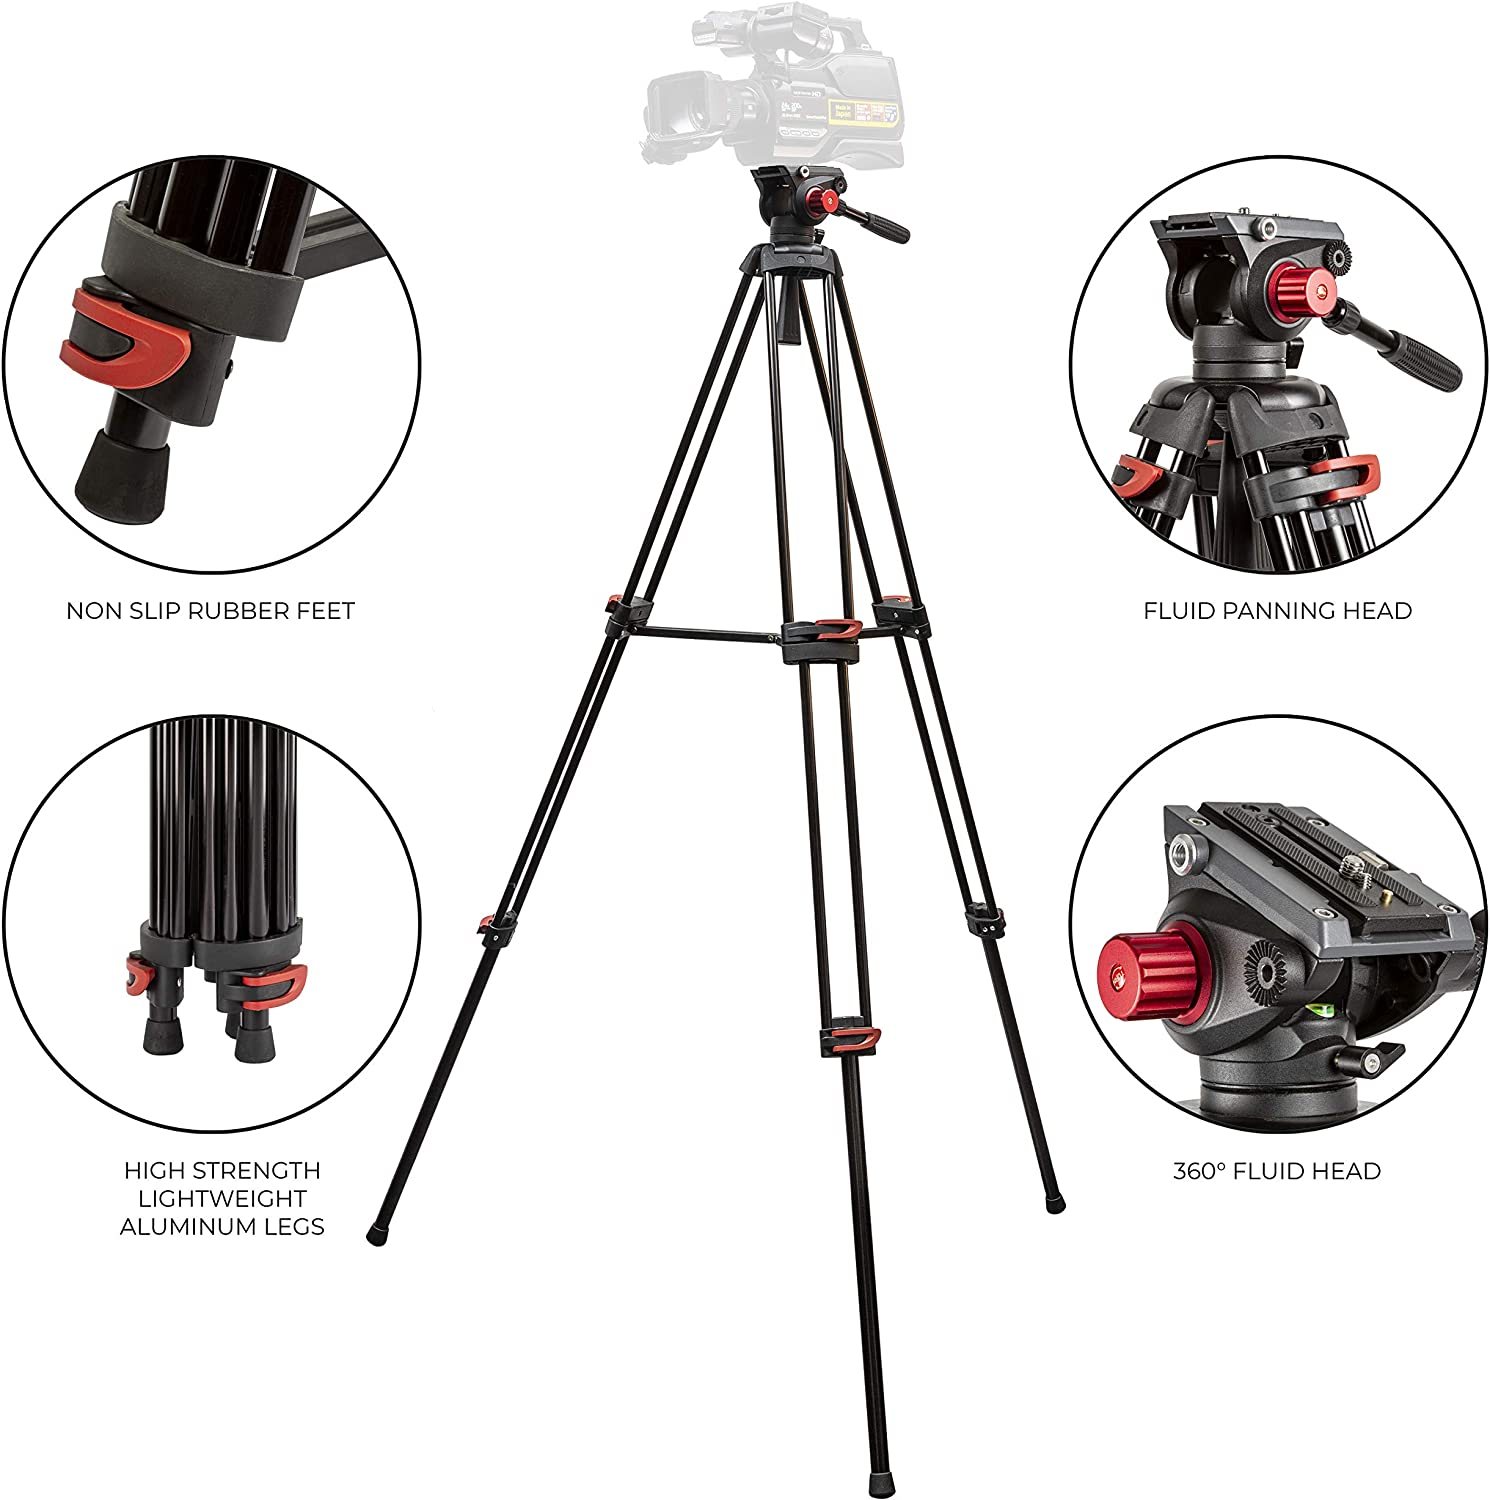 Ultimaxx 72 inch- Professional Heavy Duty Tripod Aluminum Twin Tube, 360 Panning Fluid Head, Non Slip High Strength Legs, Max Loading 17 LB, Camcorders and Cameras